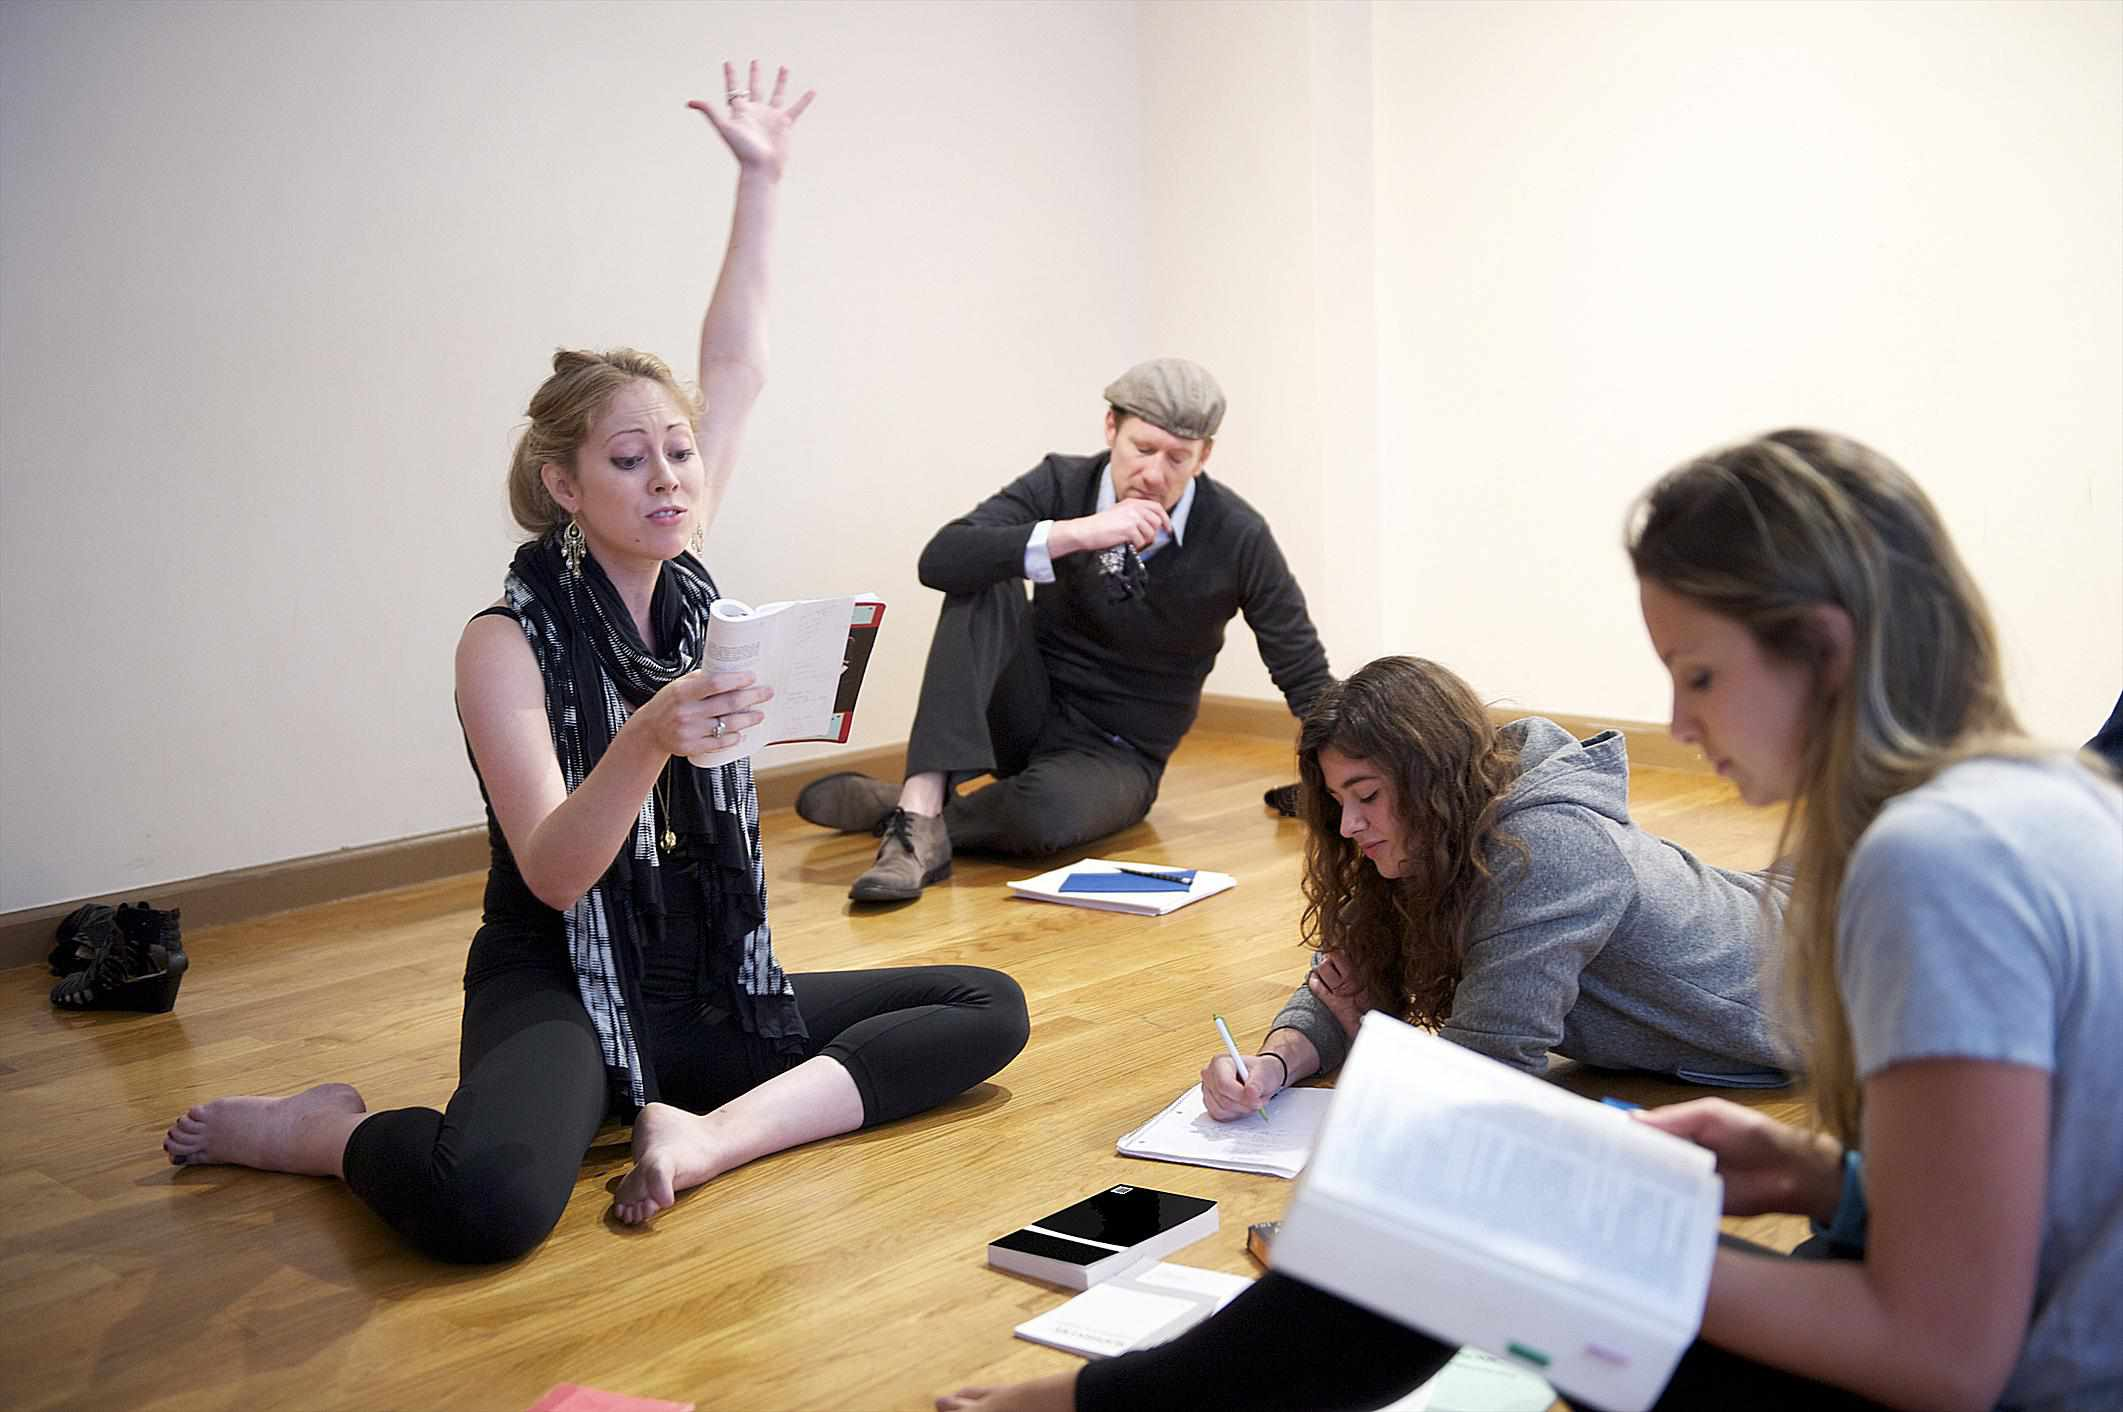 Young woman reading in acting class.